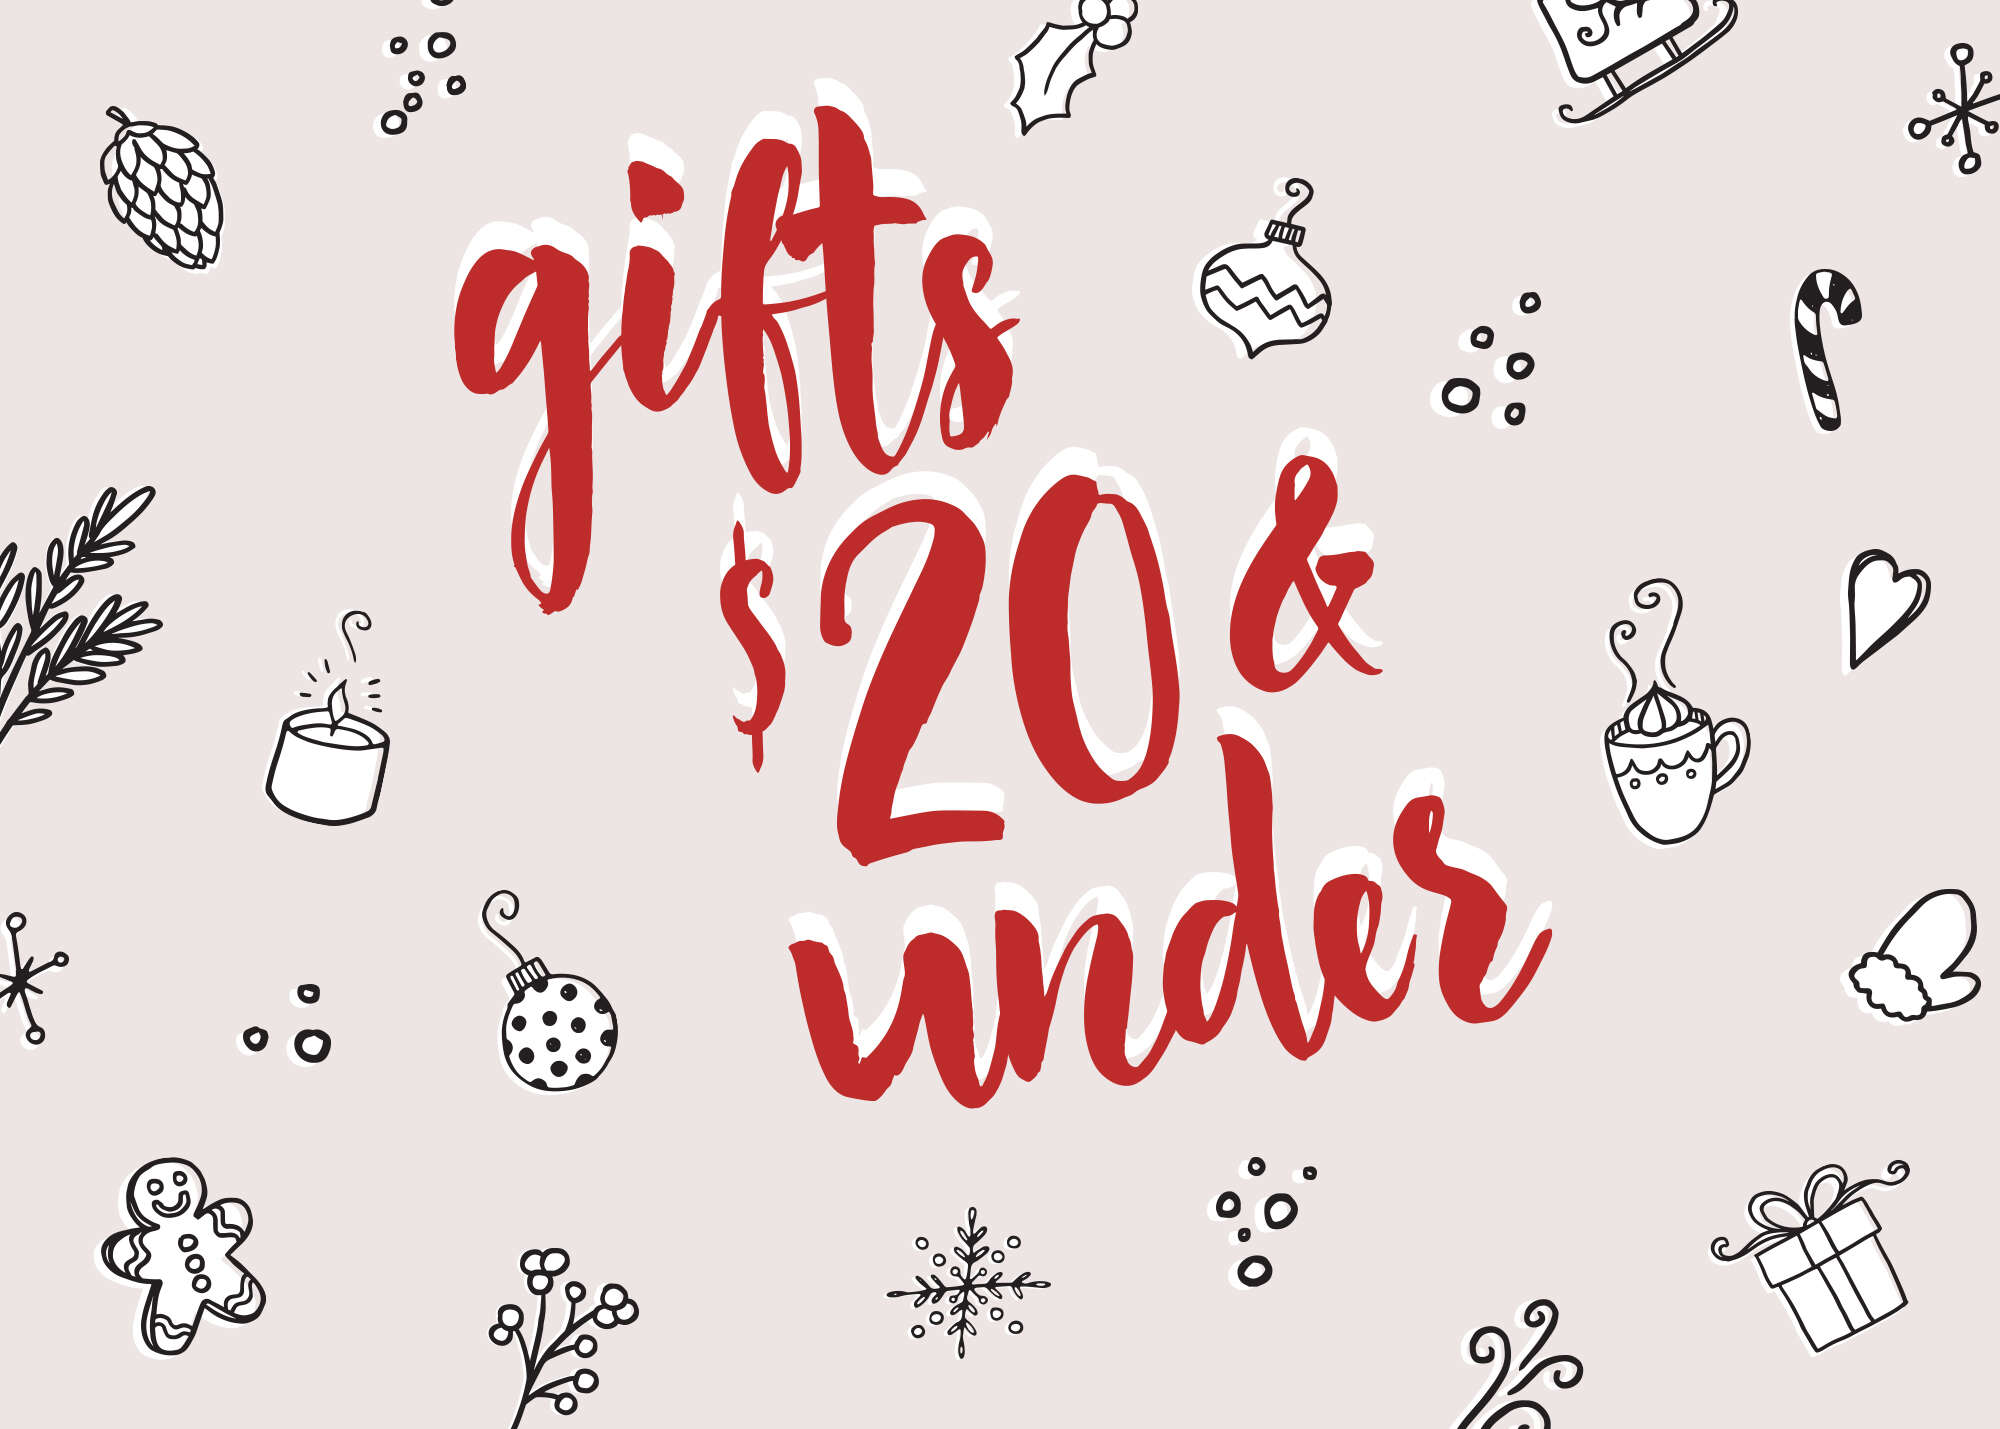 Gifts $20 and under